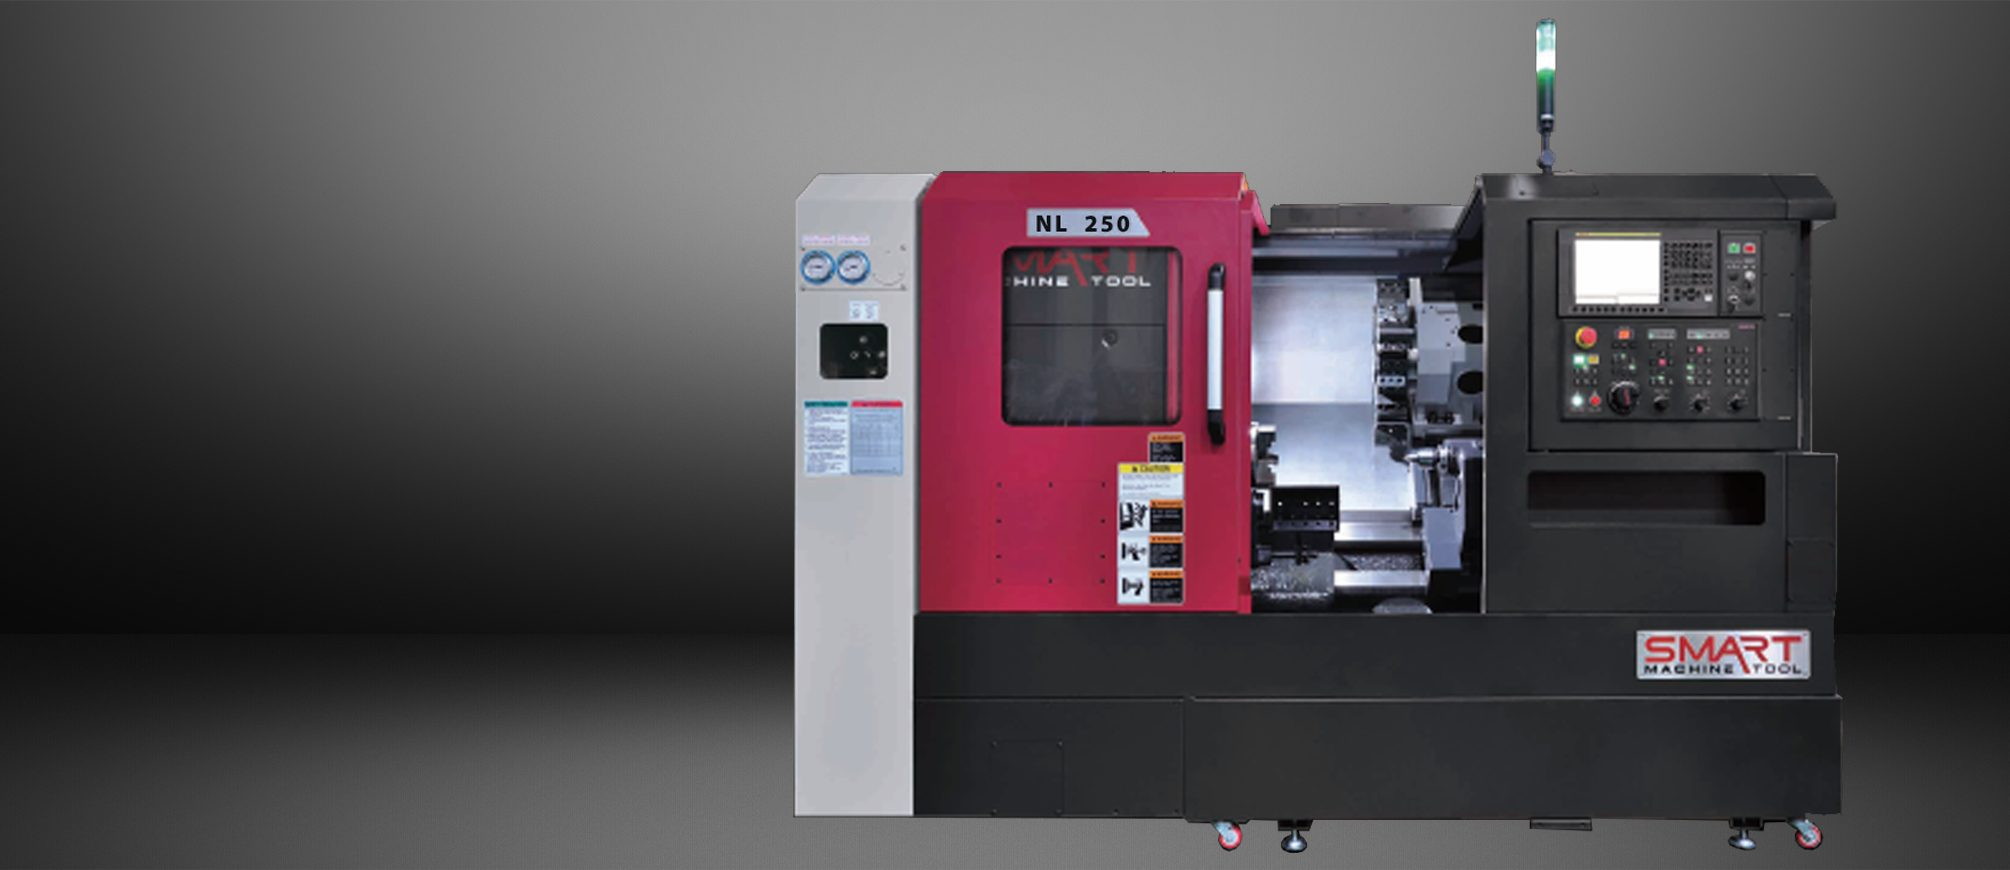 SMART NL 250 – BOX WAY – (10″ CHUCK) 2-Axis CNC Lathes